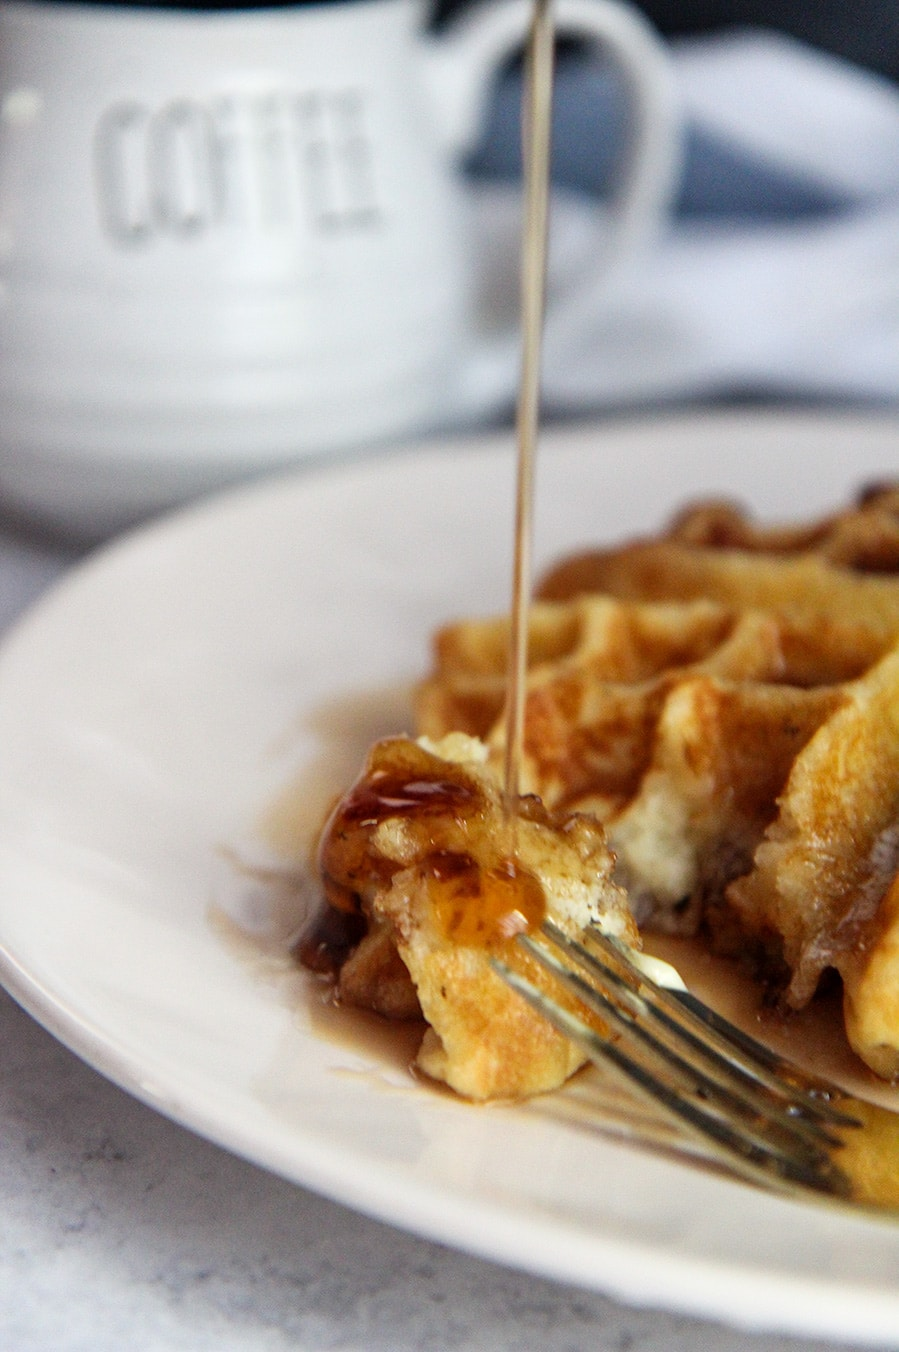 syrup pouring over a piece of waffle with a fork on the side.